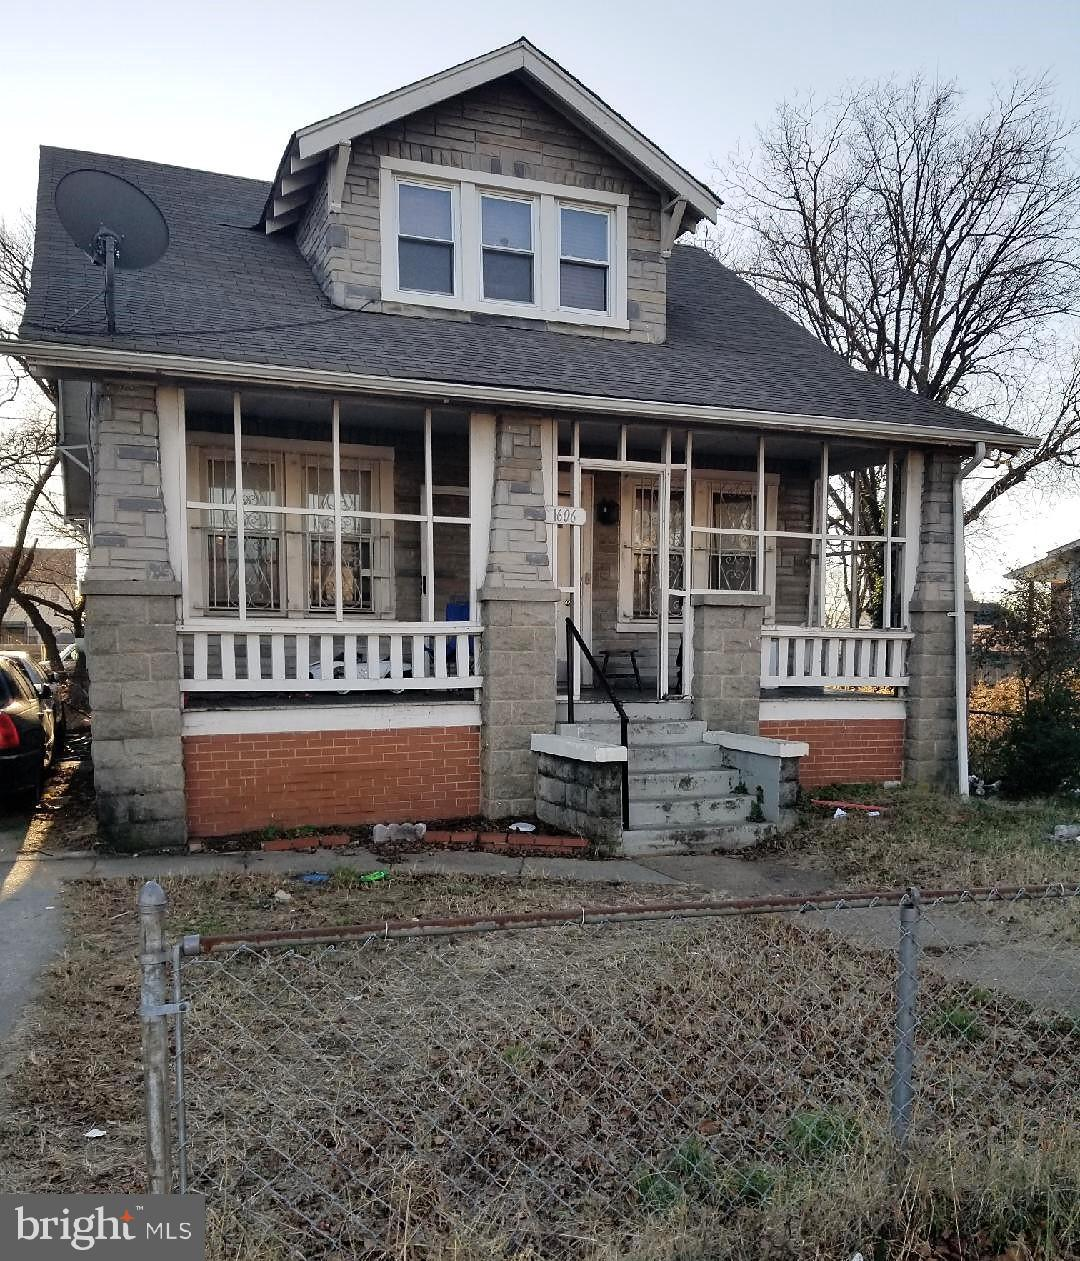 Renovation Special! Opportunity for an investor or home buyer looking to renovate this 4 bed, 2 bath